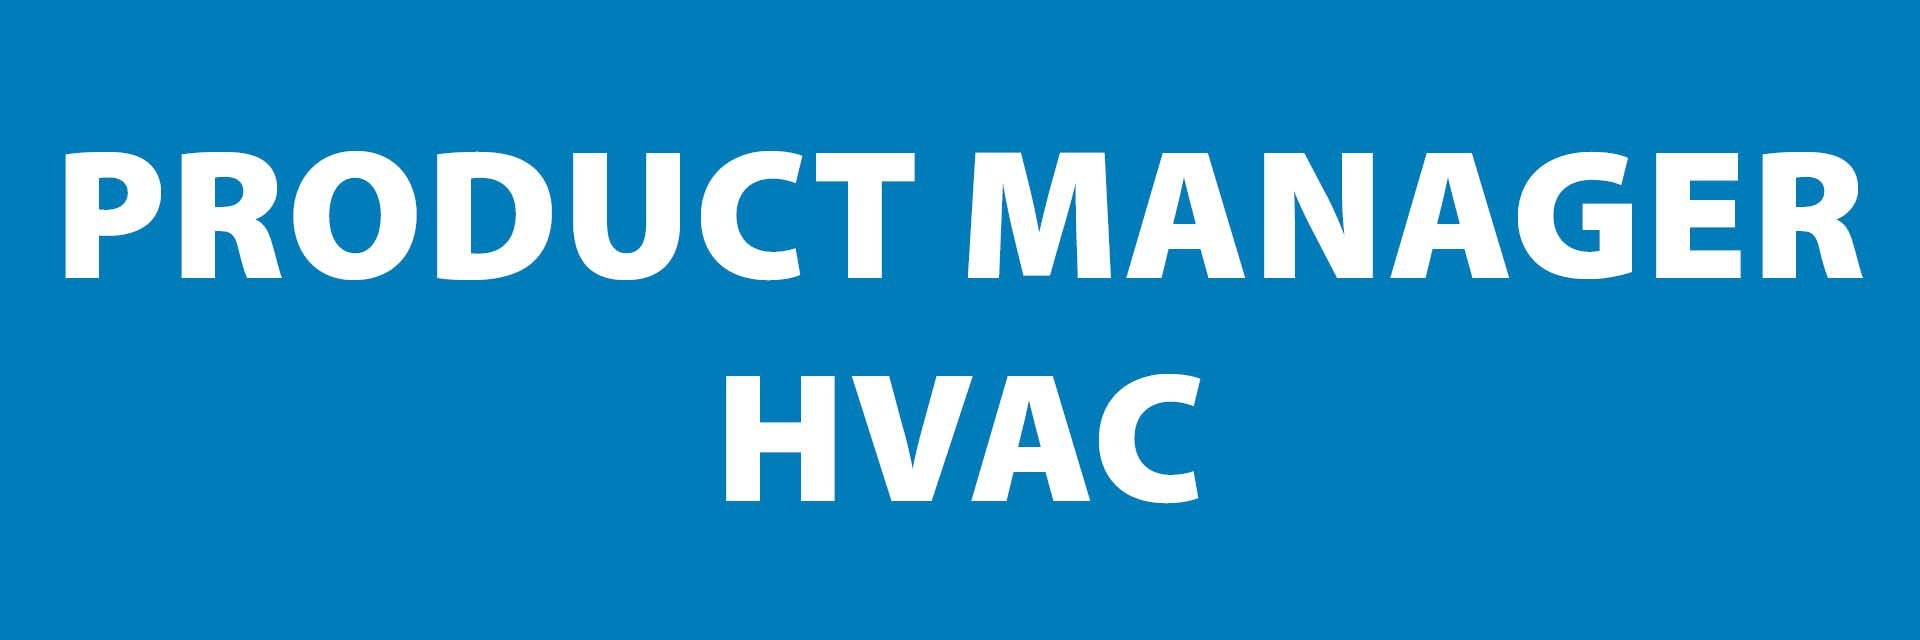 Frigro vacature: product manager HVAC